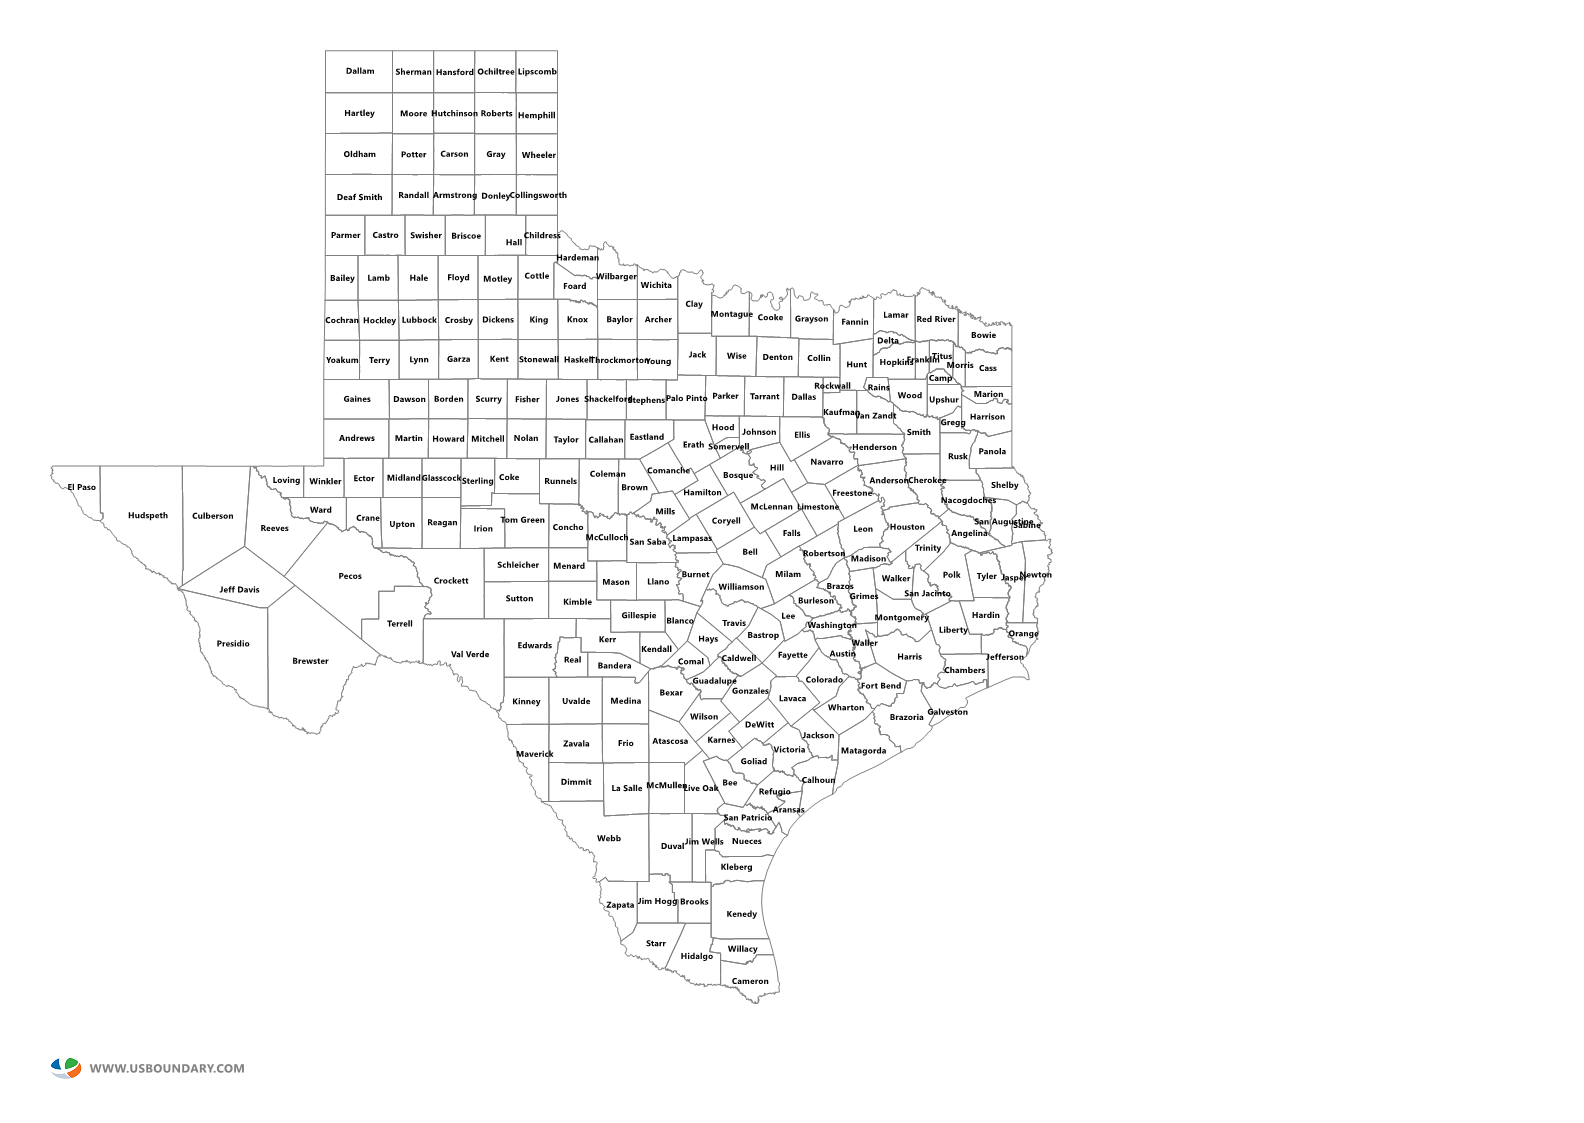 texas counties outline map